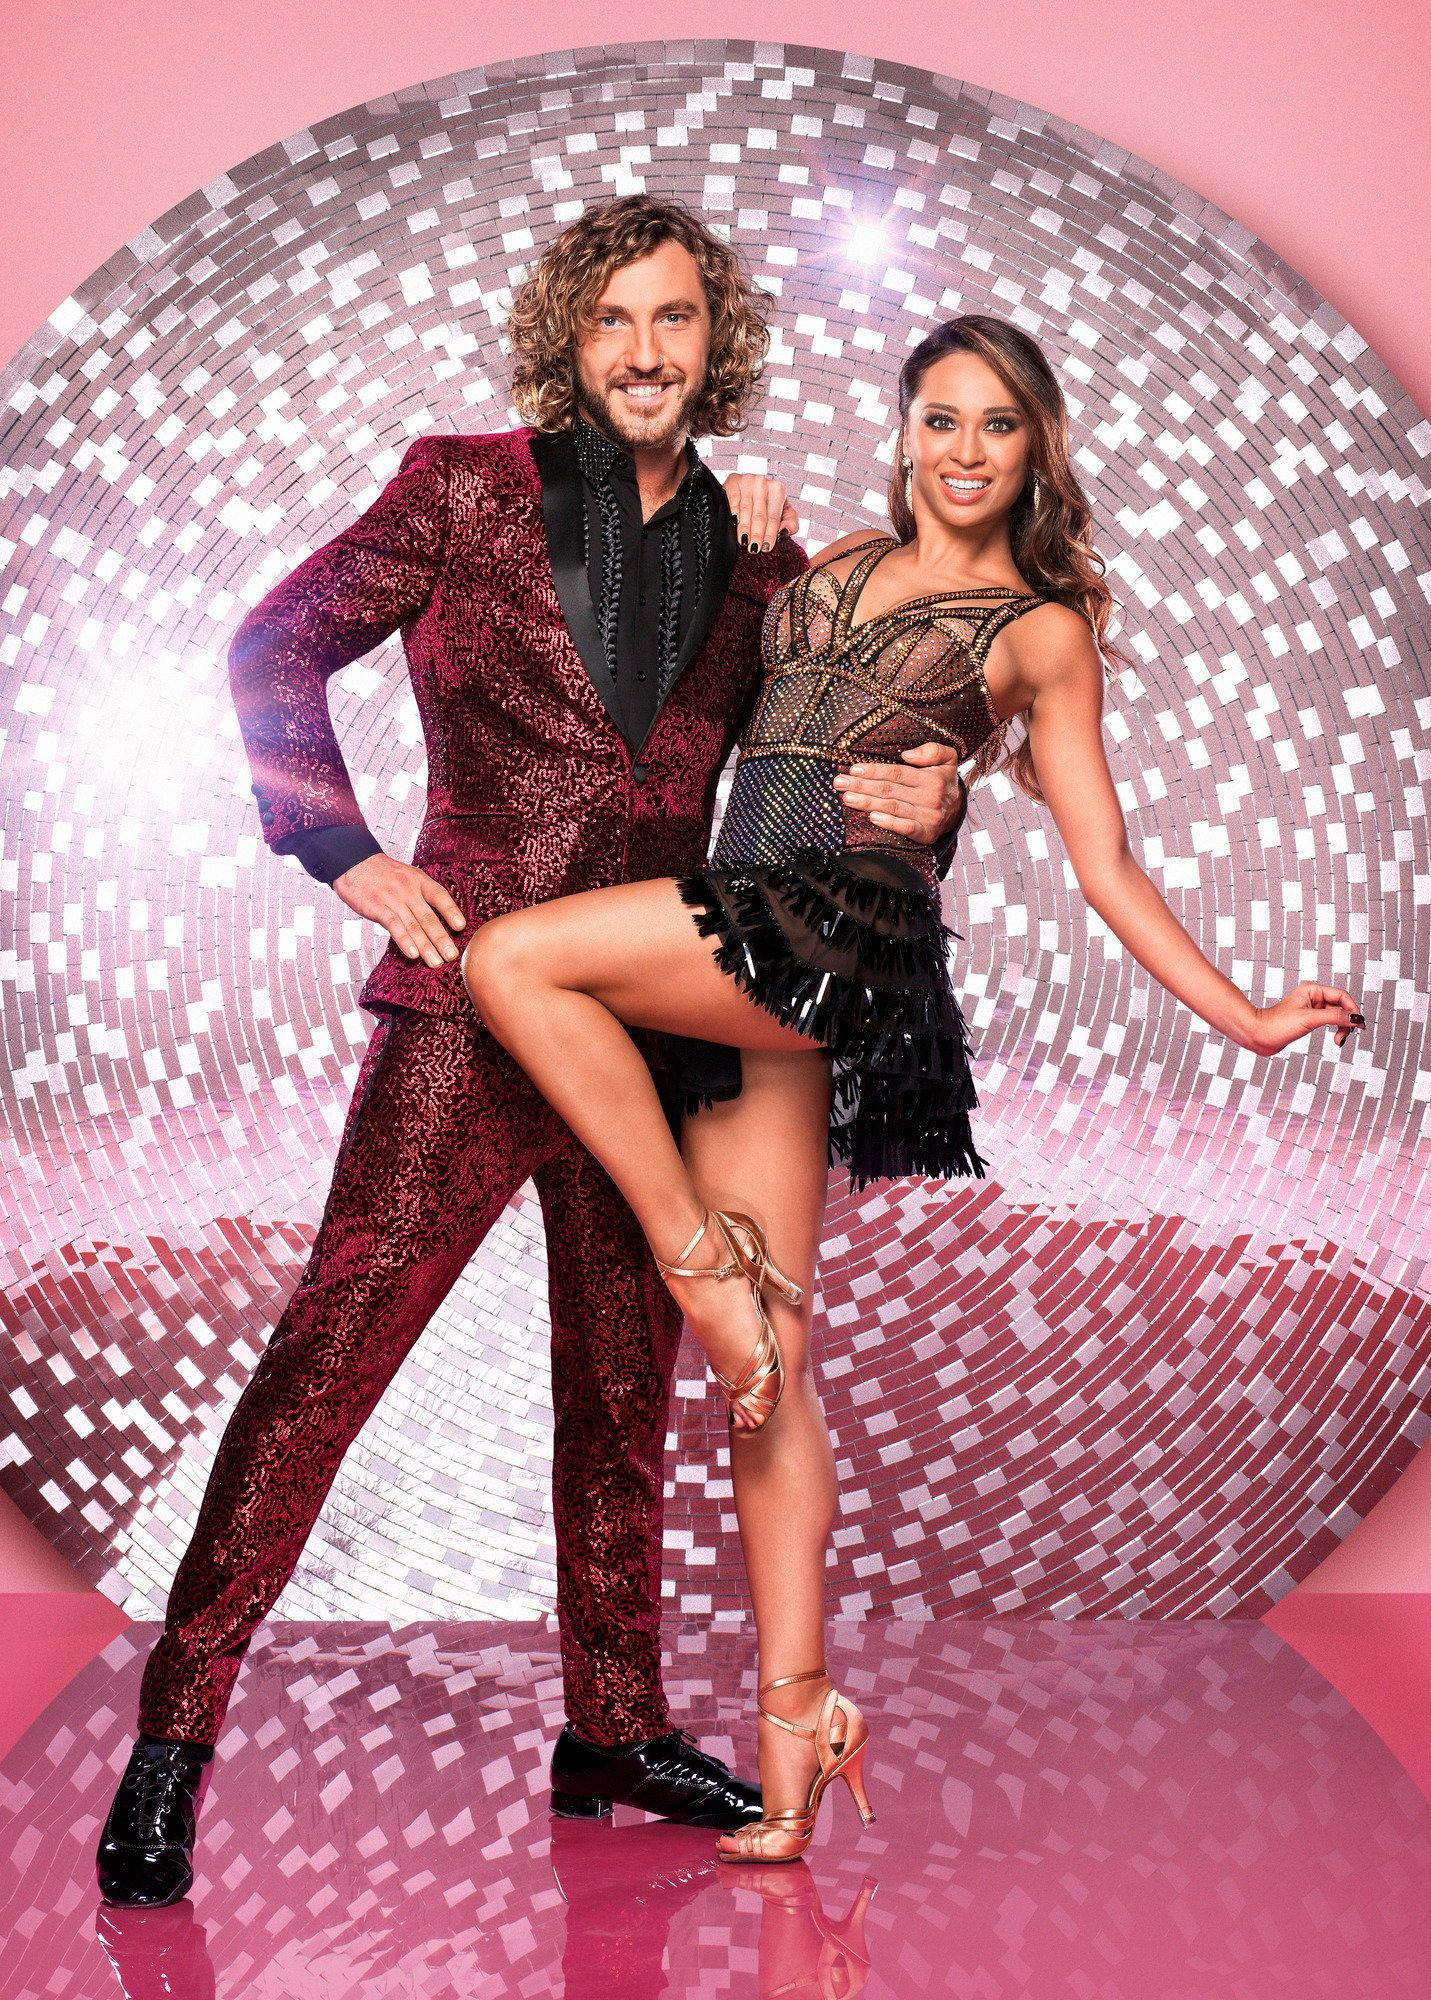 Strictly Come Dancing's Katya Jones And Seann Walsh Caught Kissing In The Street On Video